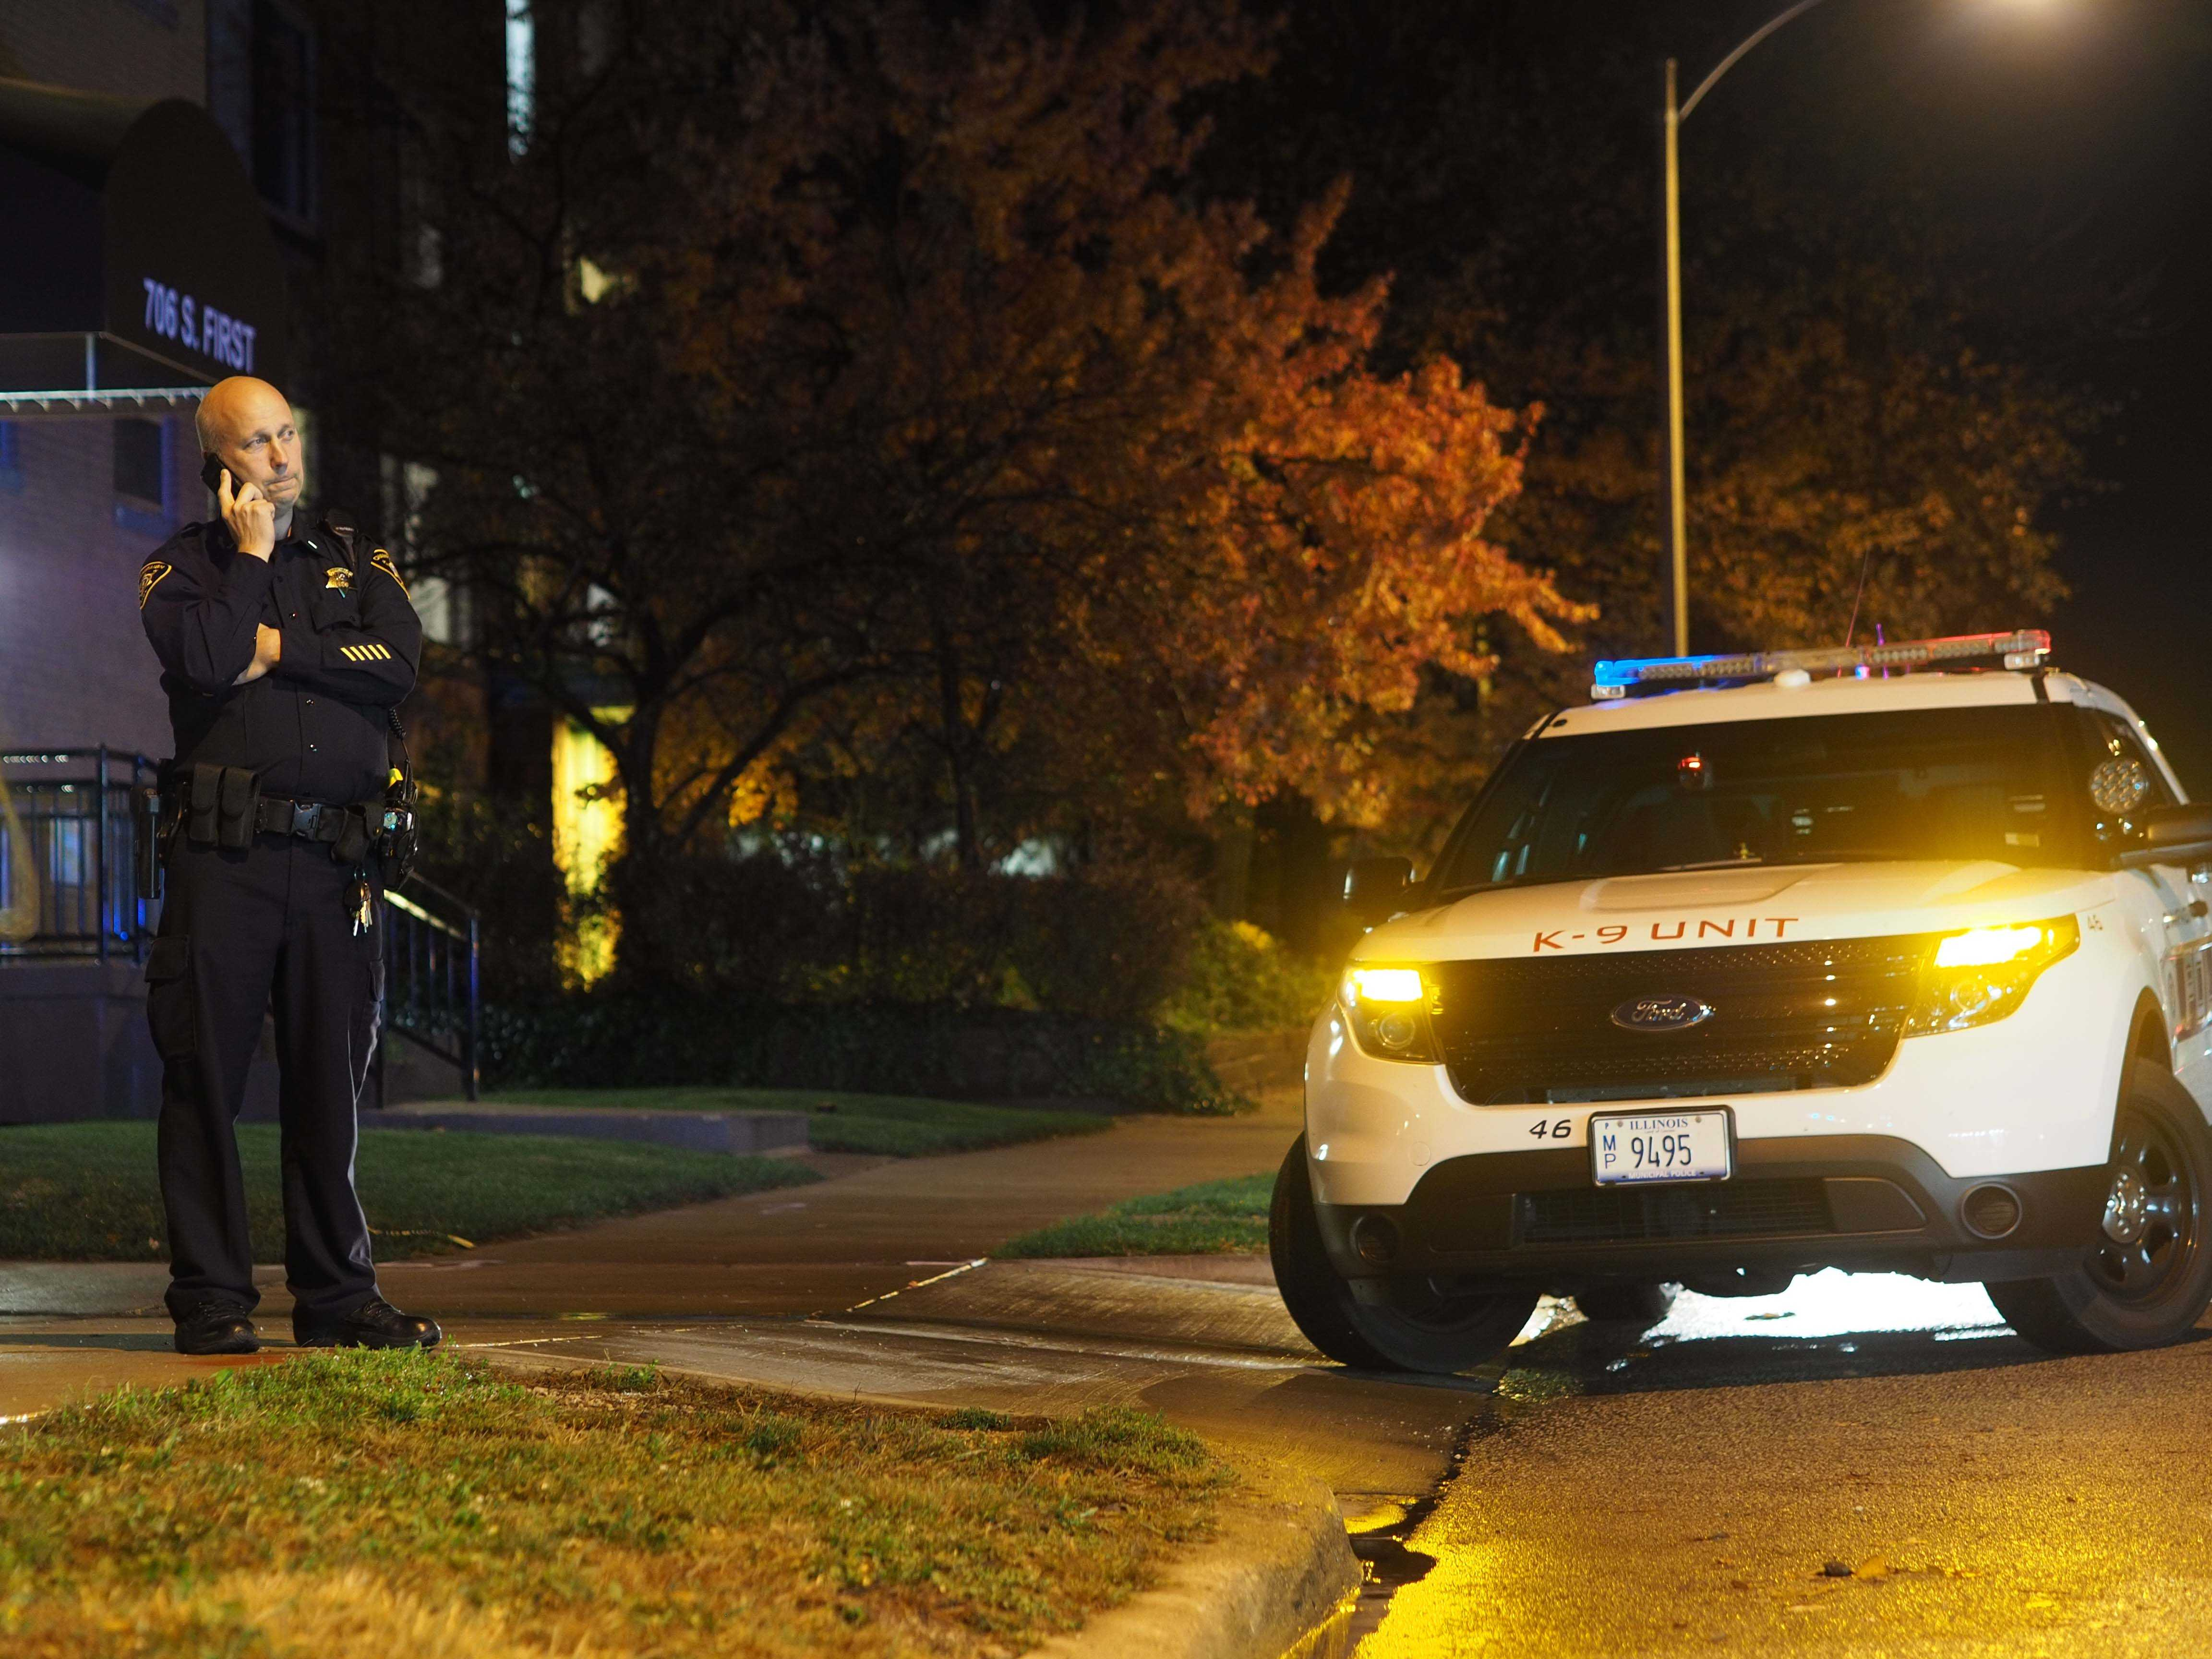 Police officer patrols First Street after a campus town shooting on Wednesday night.